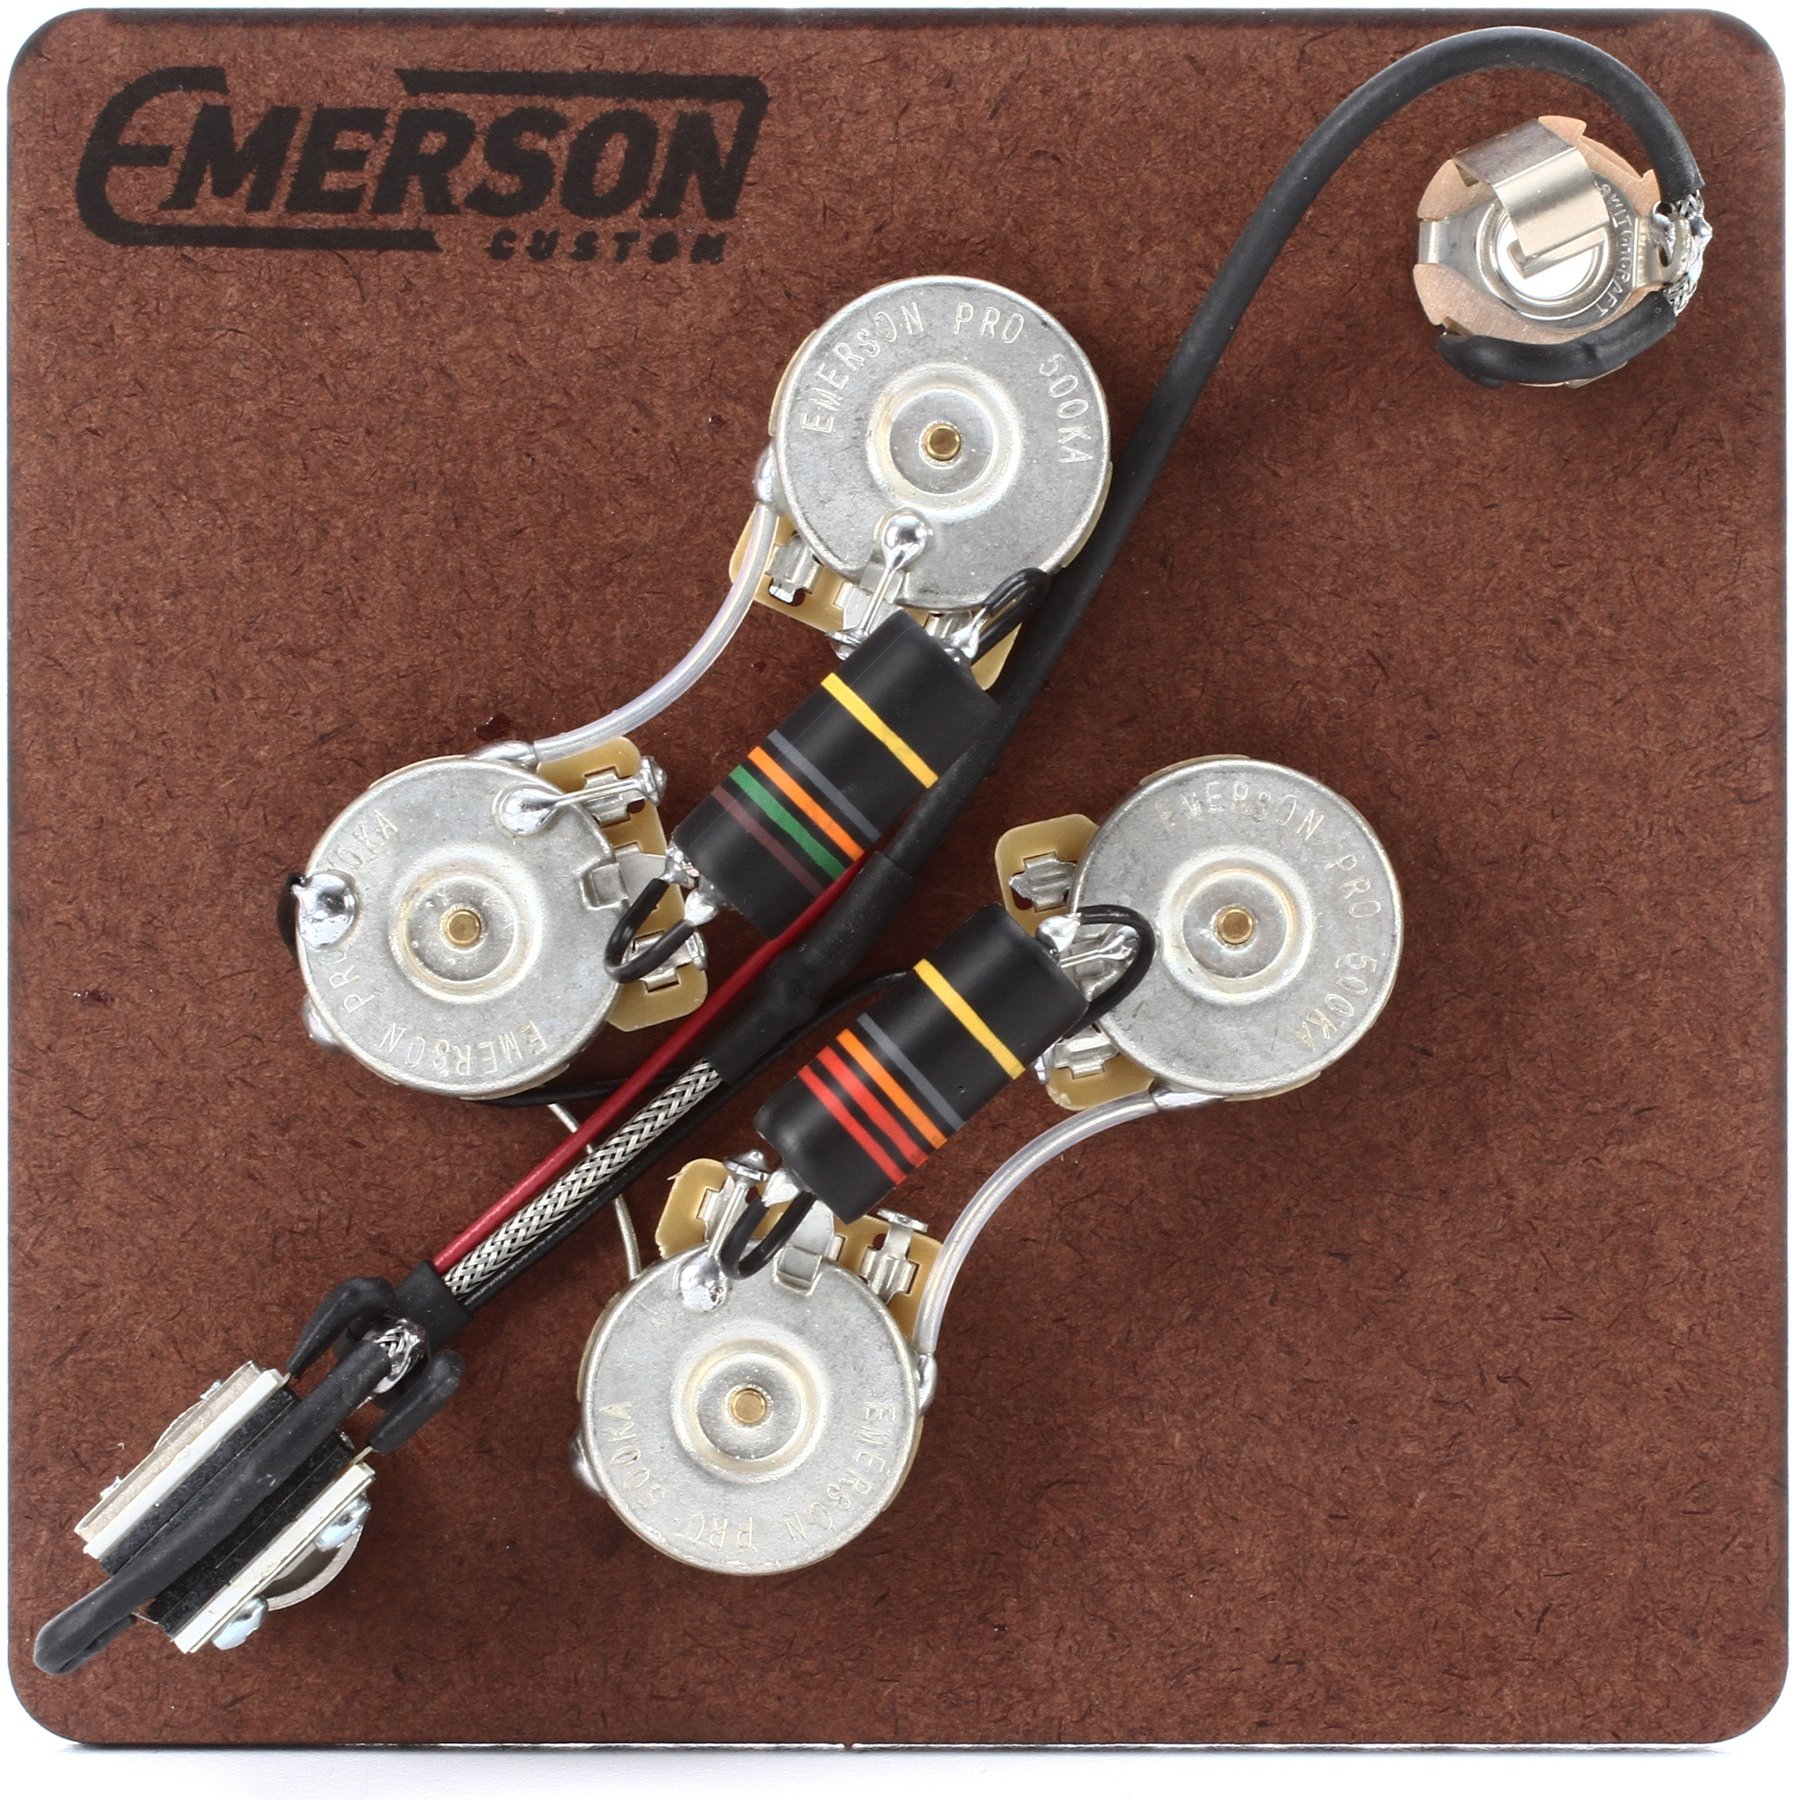 hight resolution of emerson custom prewired kit for gibson sg guitars image 1